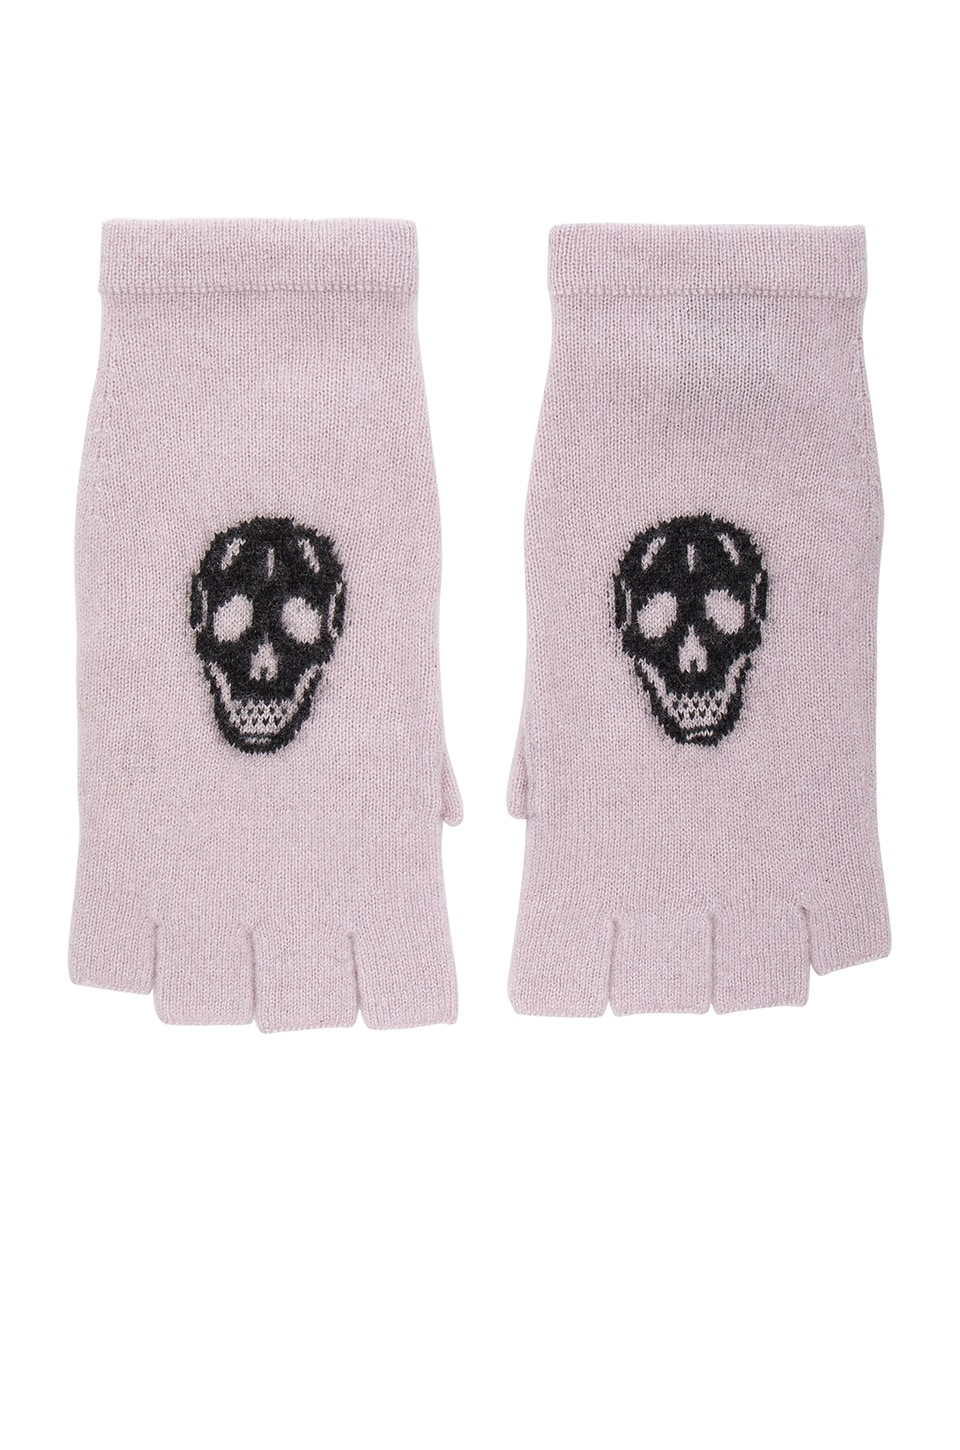 360 Sweater Skull Gloves in Flower & Charcoal Skull